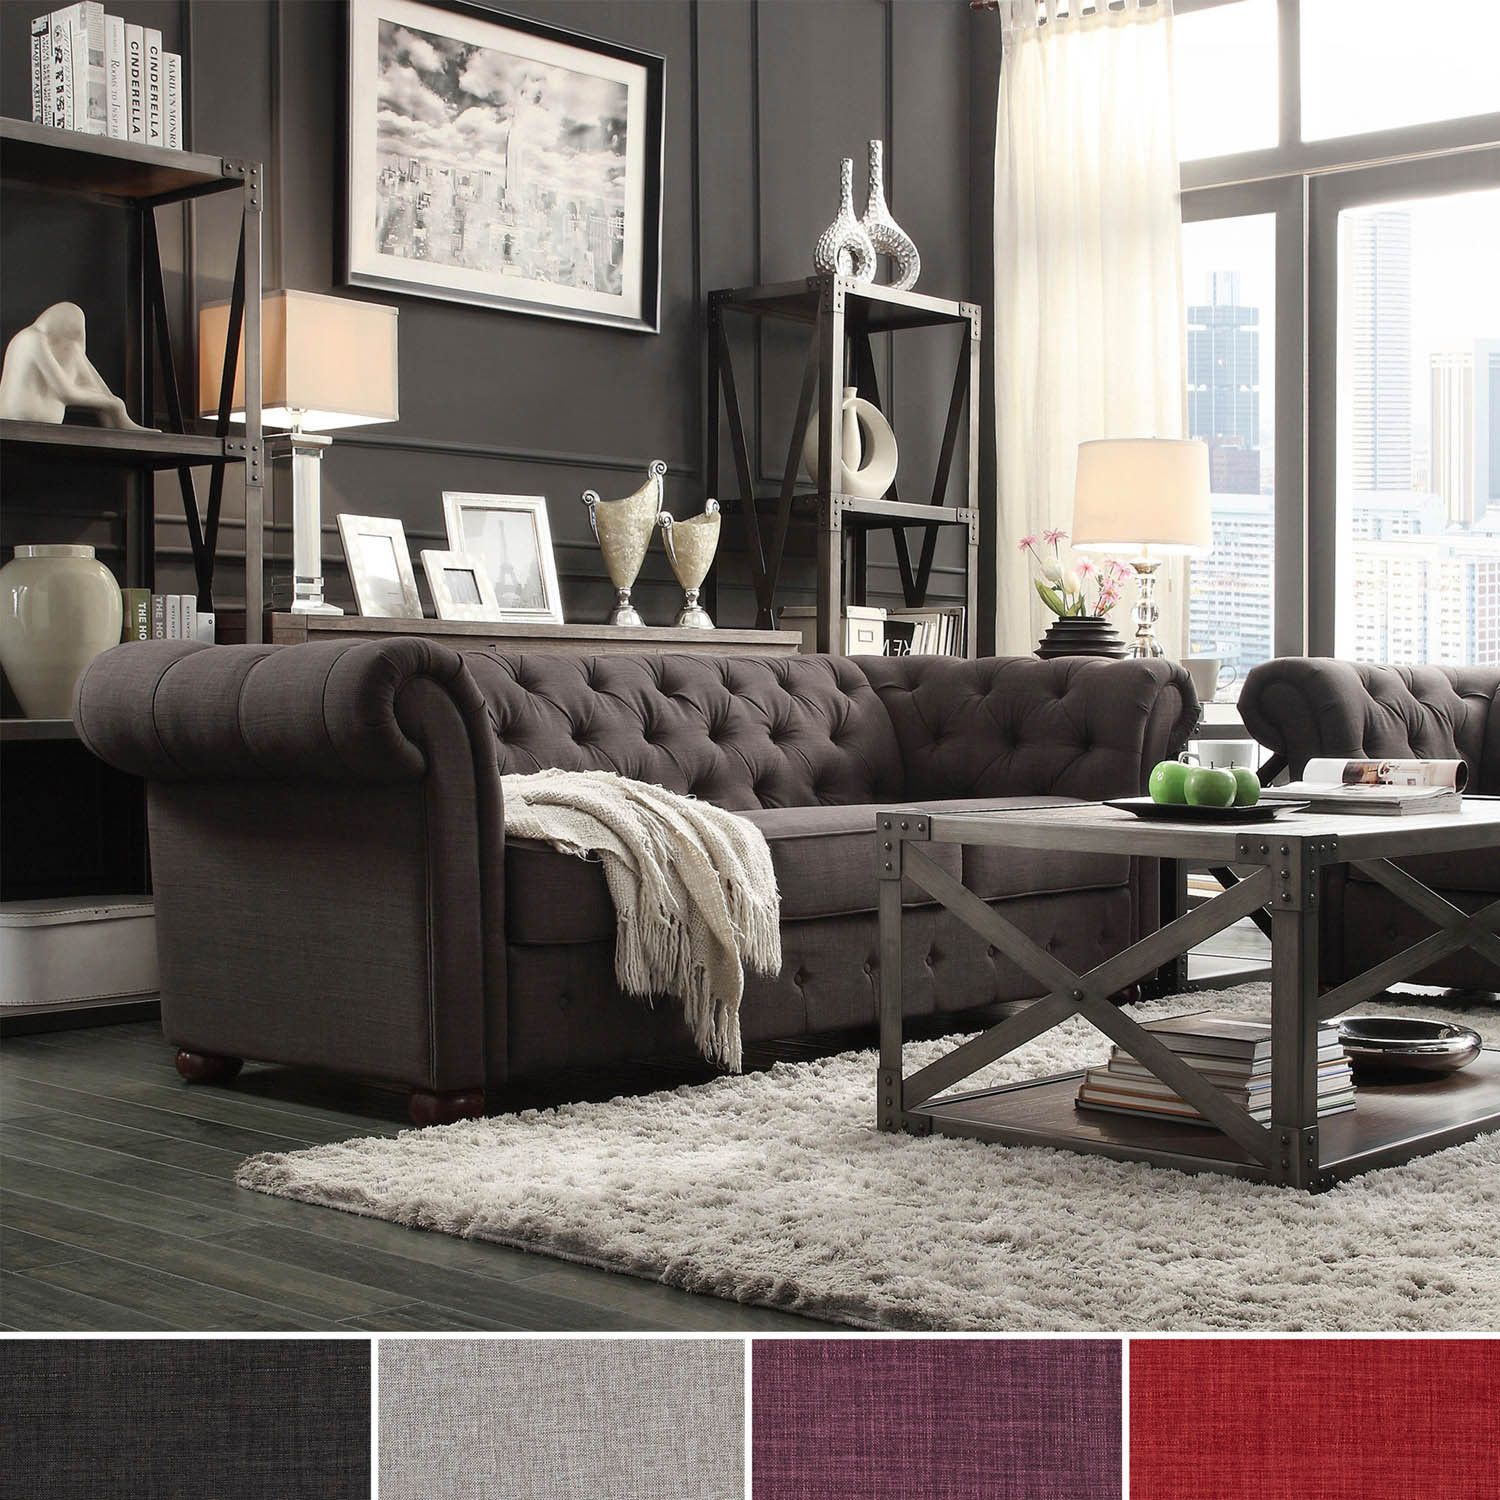 Chesterfield Sofa Living Room Ideas Add Graceful Seating To You Home With This Chesterfield